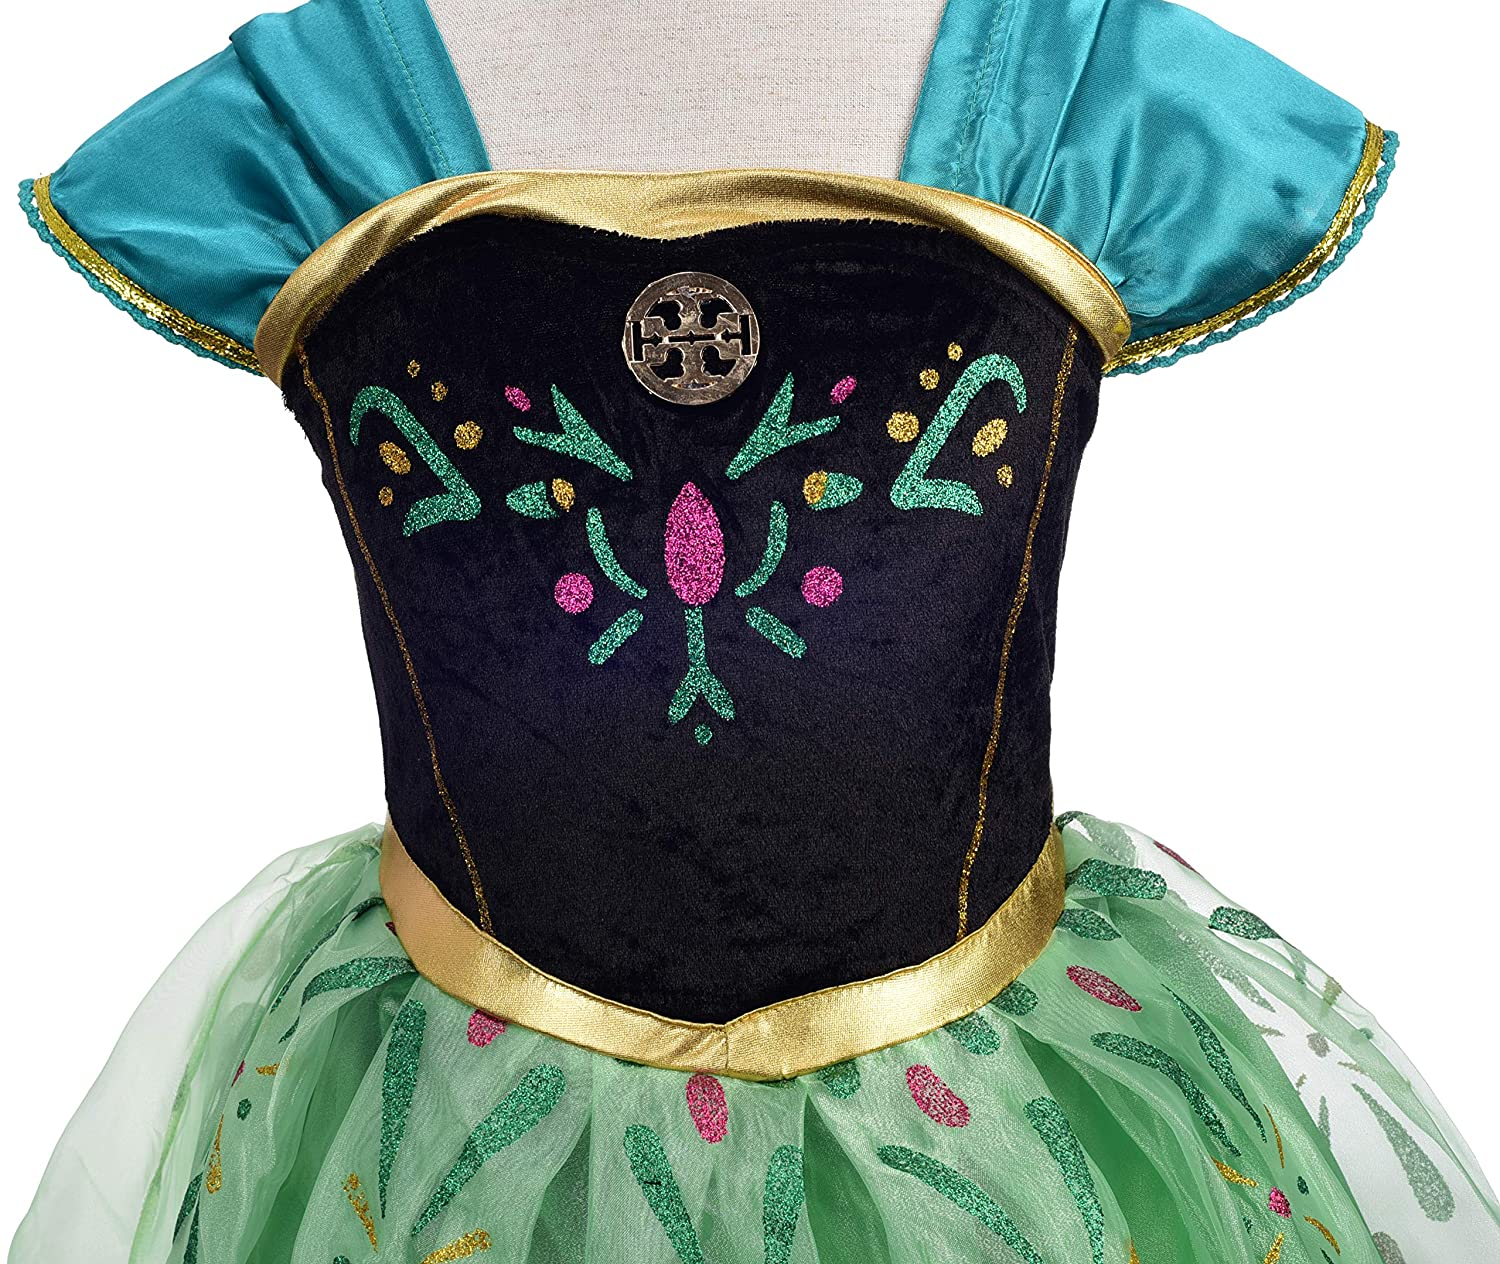 Dressy Daisy Girls Princess Anna Dress Up Costumes Halloween Party Outfit